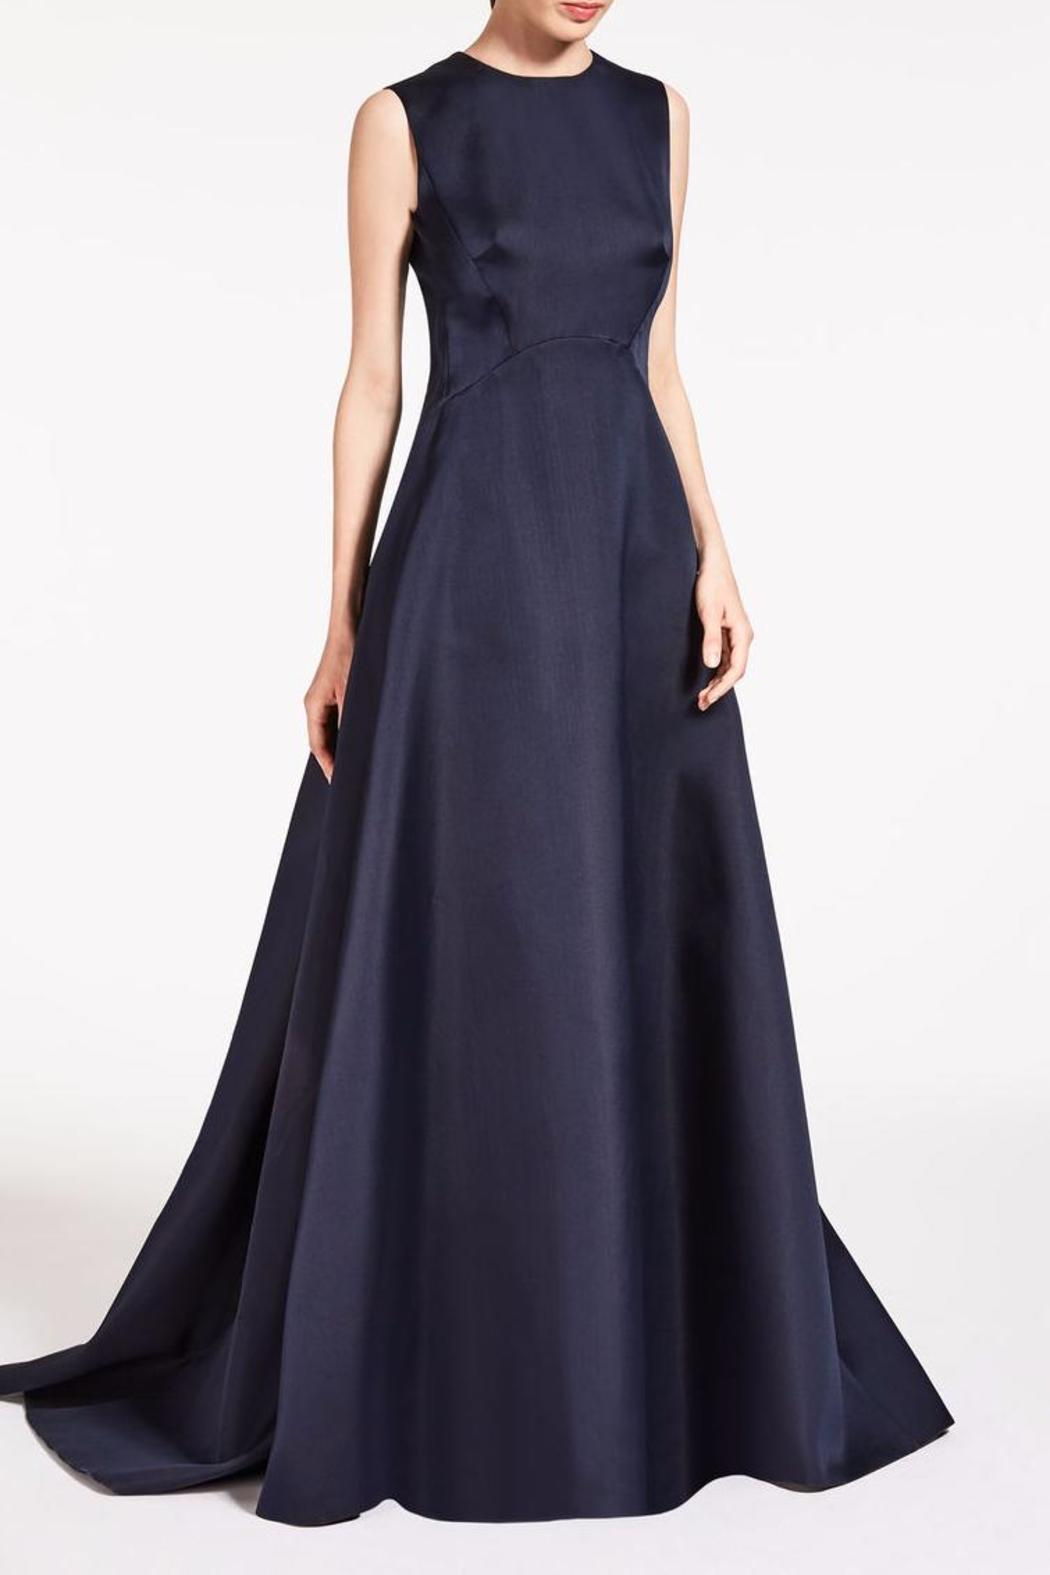 3d3dc68e13 Max Mara Tailored Evening Gown from Marylebone by Alberre Odette ...